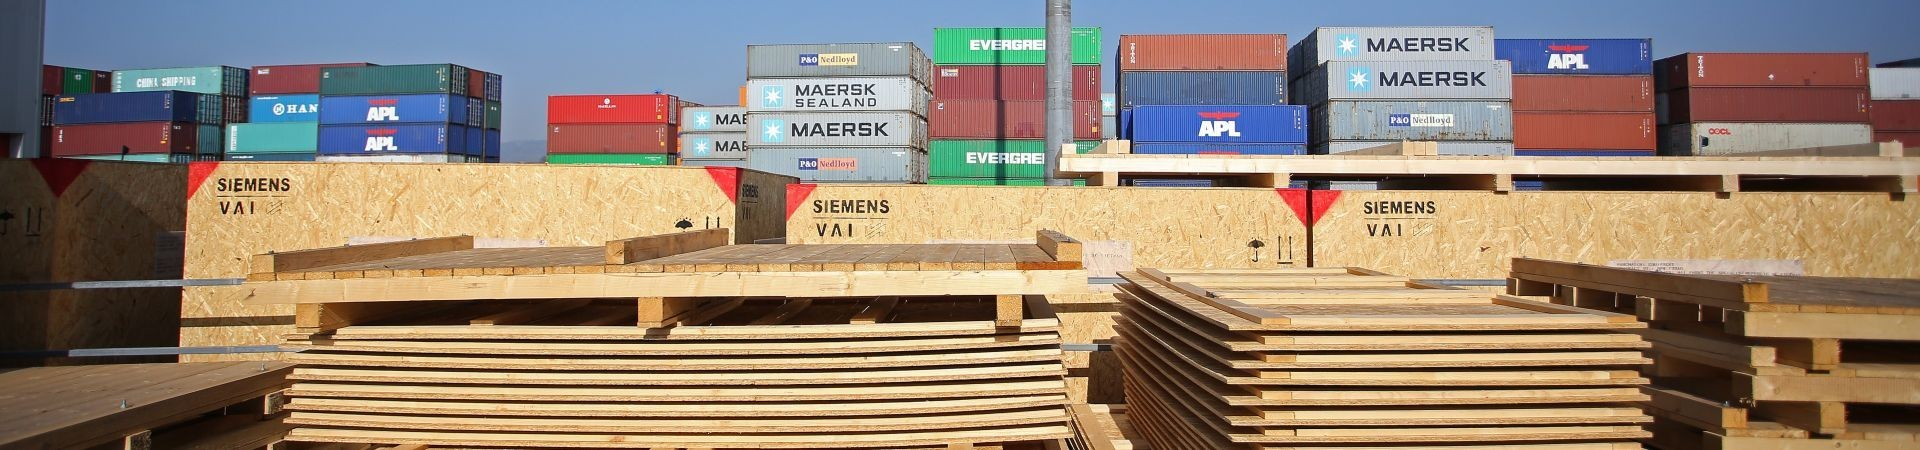 Exportverpackung aus Holz